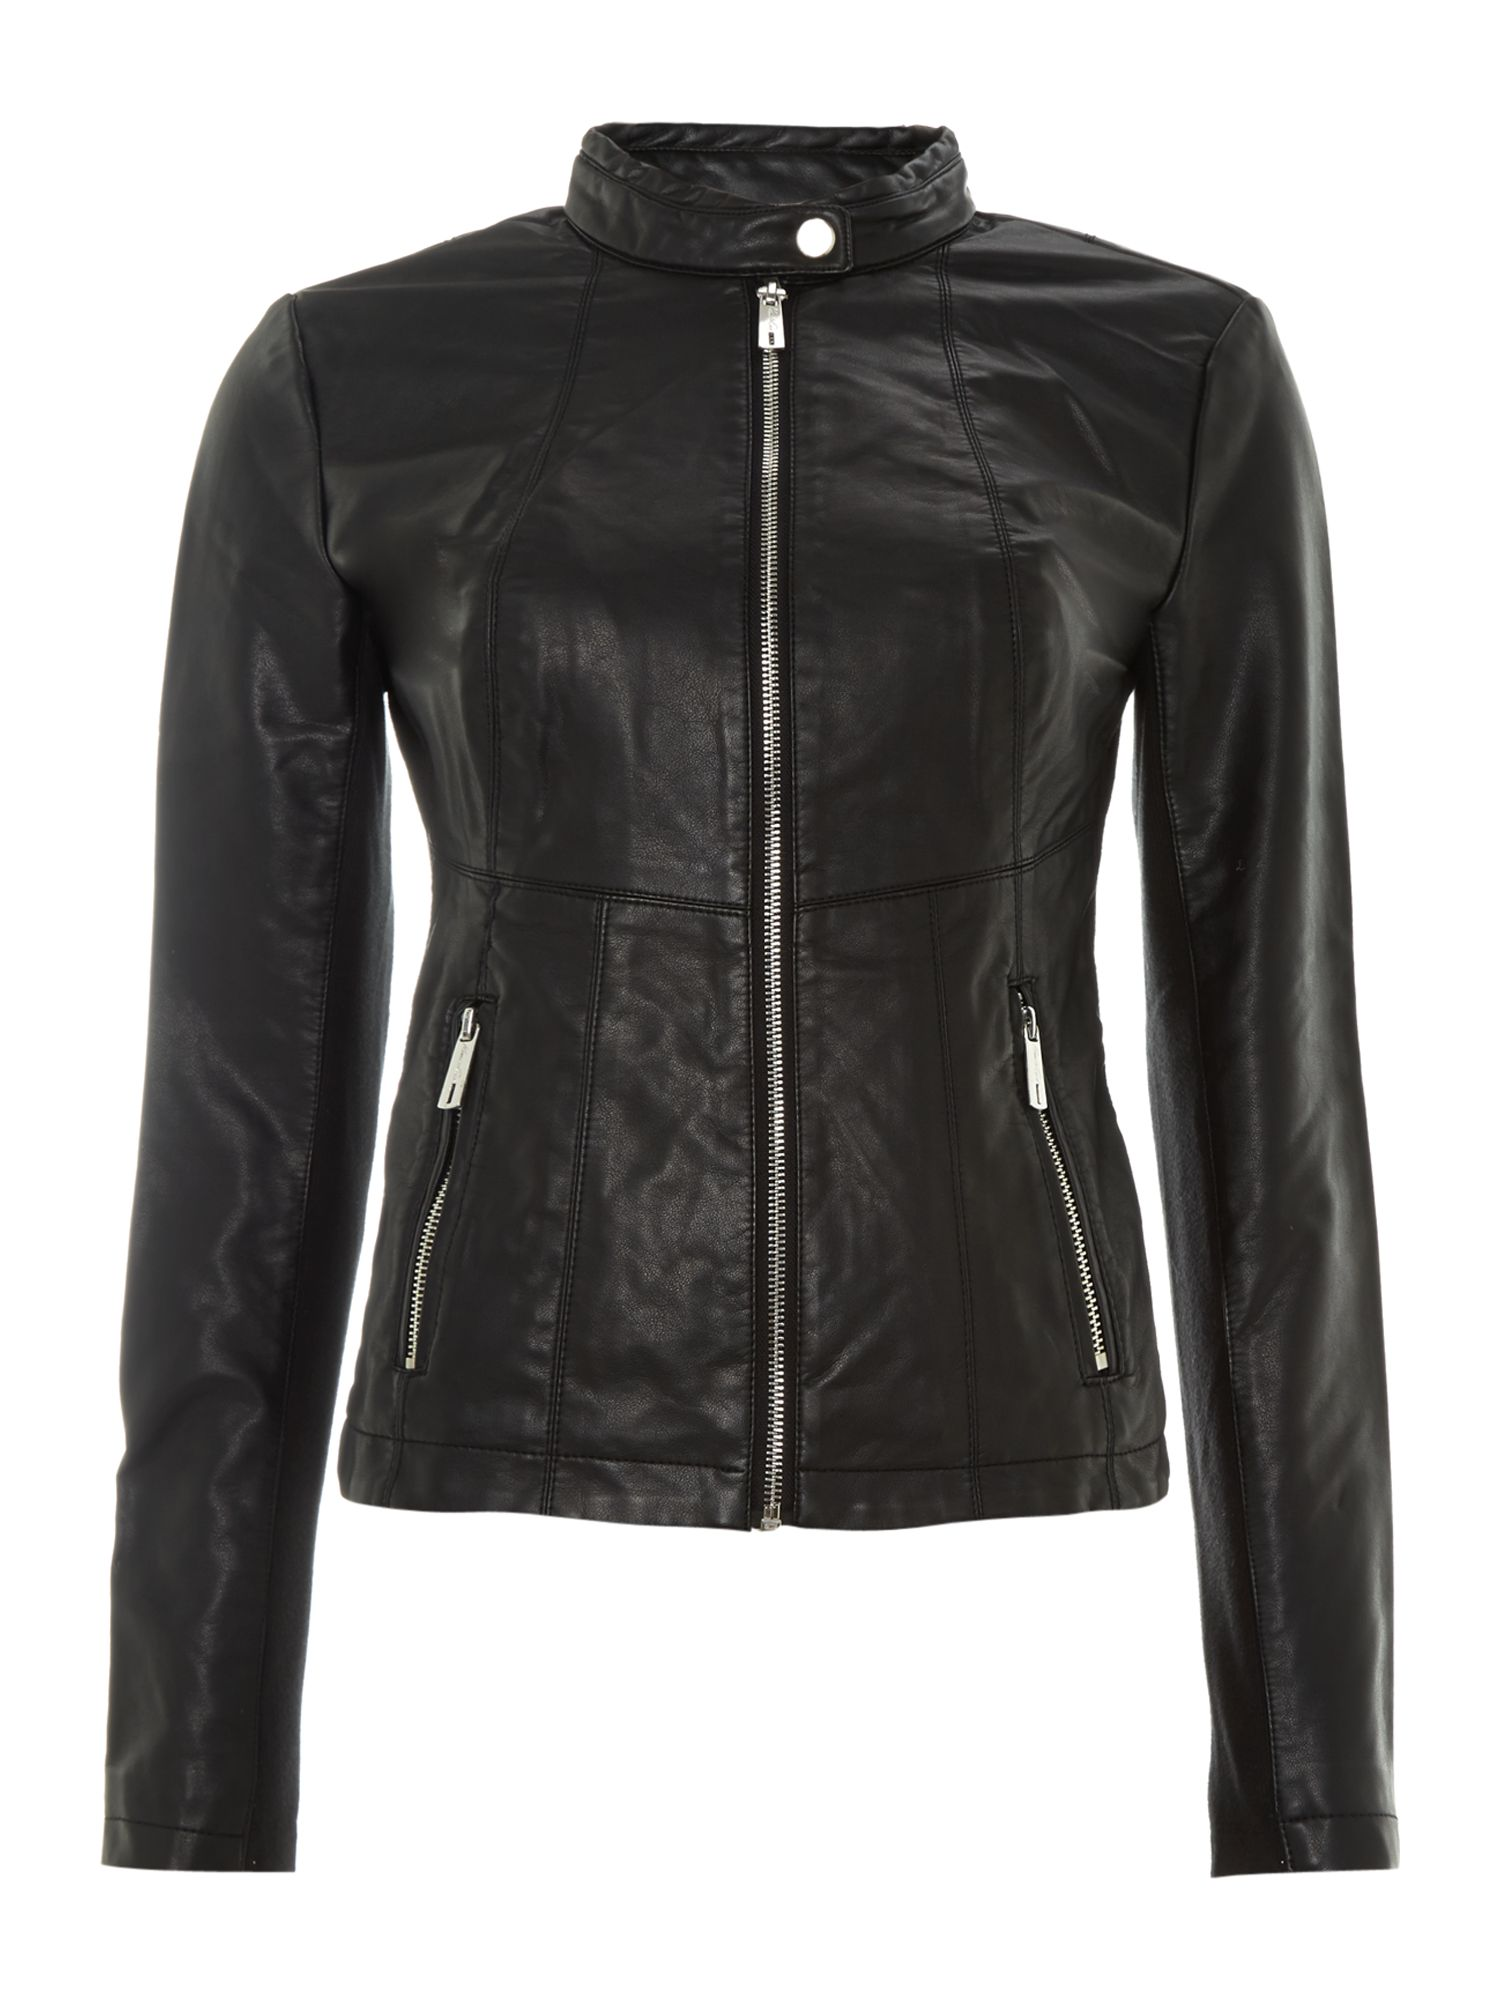 Zip Up leather biker jacket